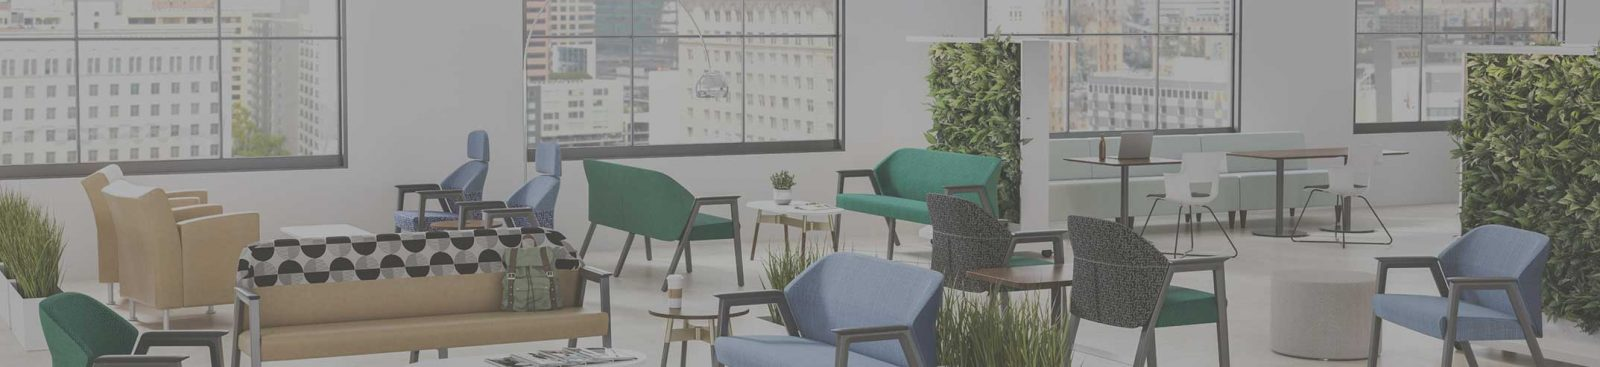 How biophilic office design can help attract and retain staff image